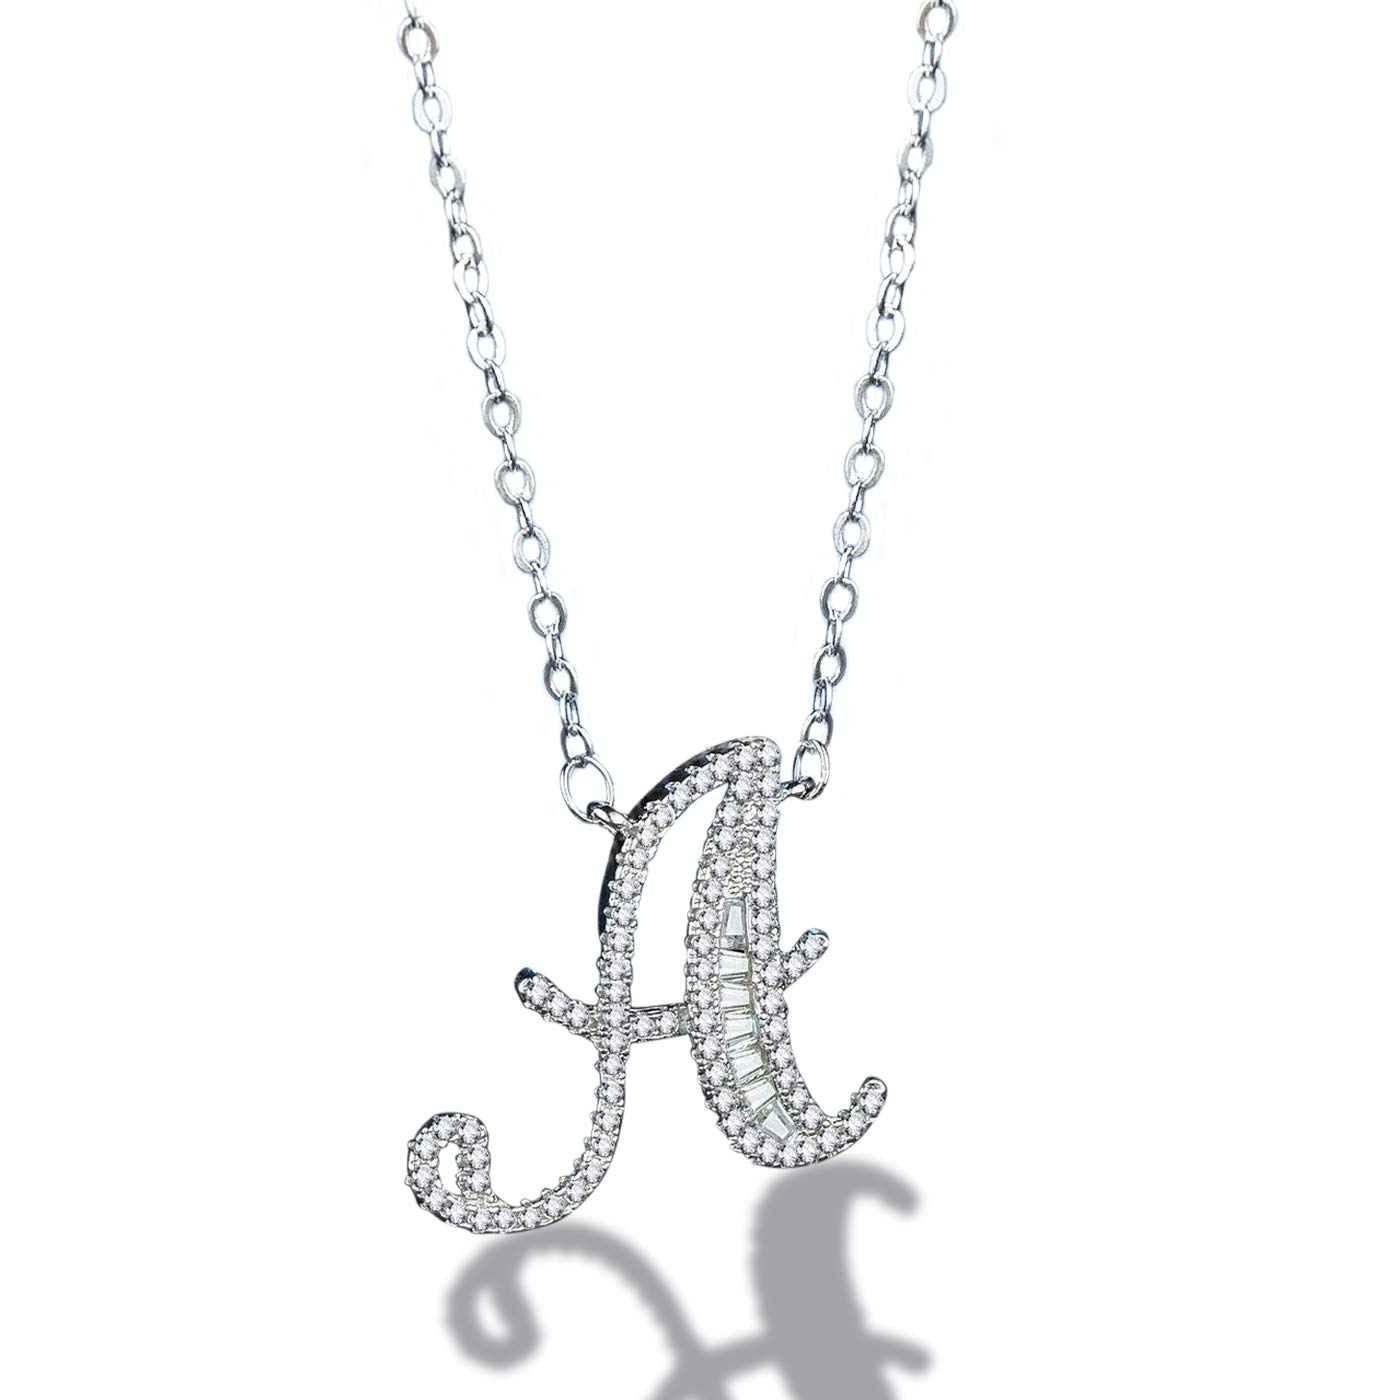 c25eb0b3dd83cf Amazon.com: Zaxicht Silver Plated Initial Necklace for Women Girls, 26  Letters Alphabet with Sparking Dainty Rhinestones Personalized Pendant  Necklaces (A): ...